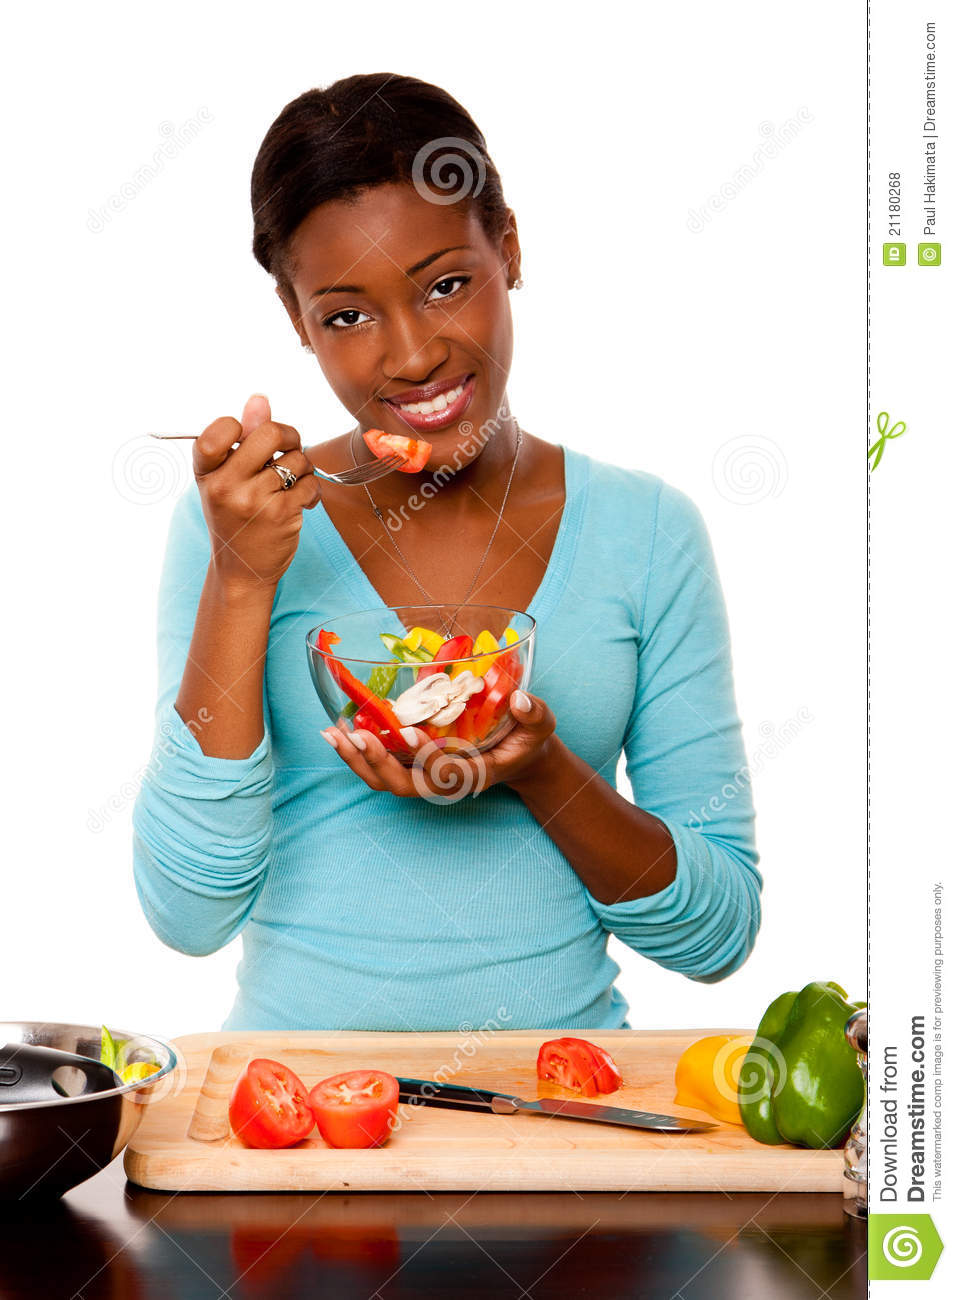 Health Conscious young woman